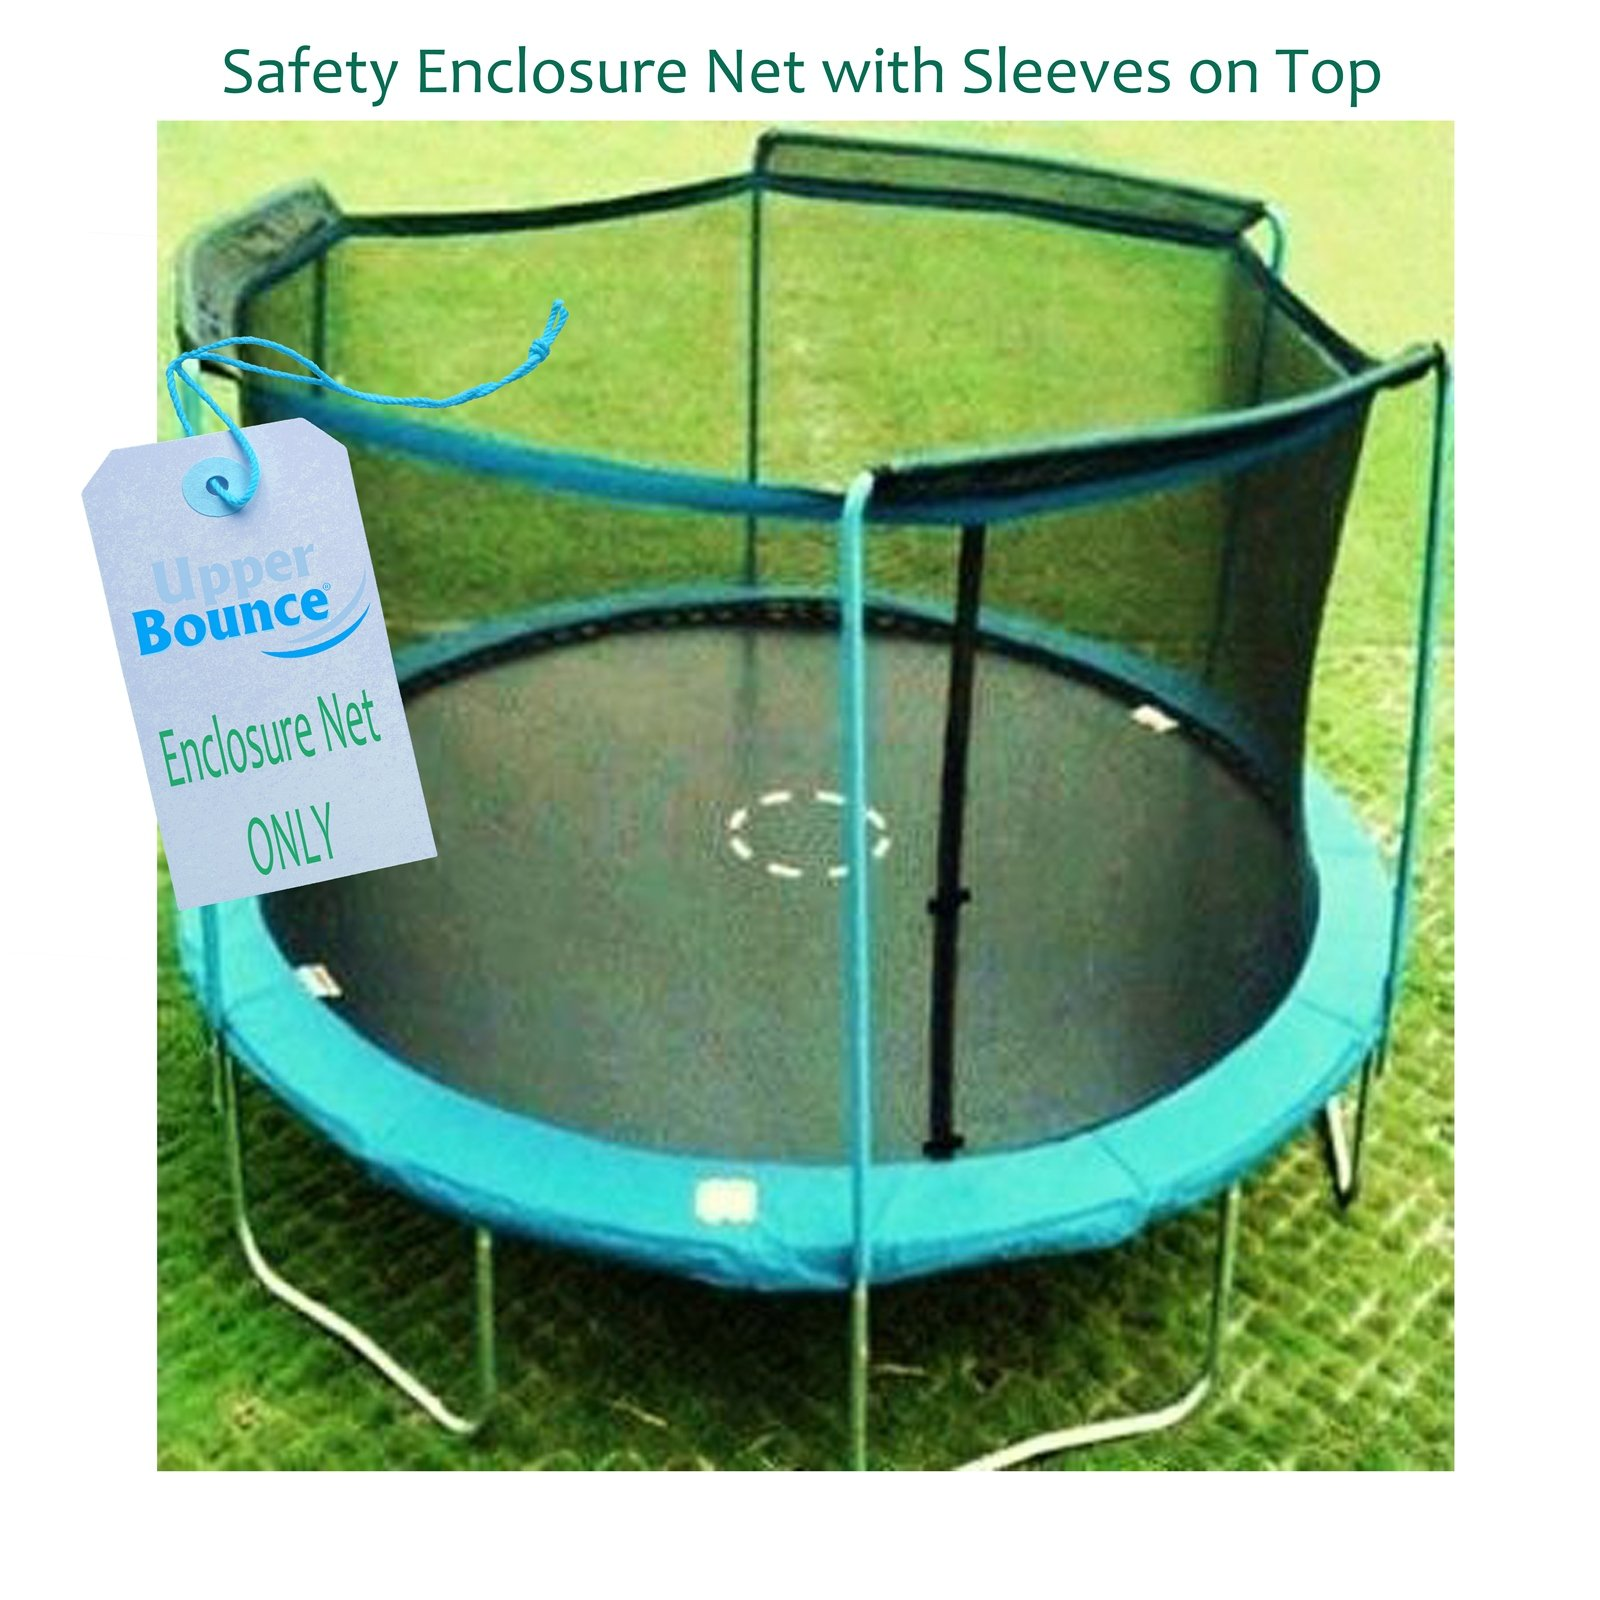 Upper Bounce Trampoline Enclosure Safety Net with Sleeves on top Fits for 15-Feet Round Frame Using 3 Arches (Poles Sold Separately) by Upper Bounce (Image #2)